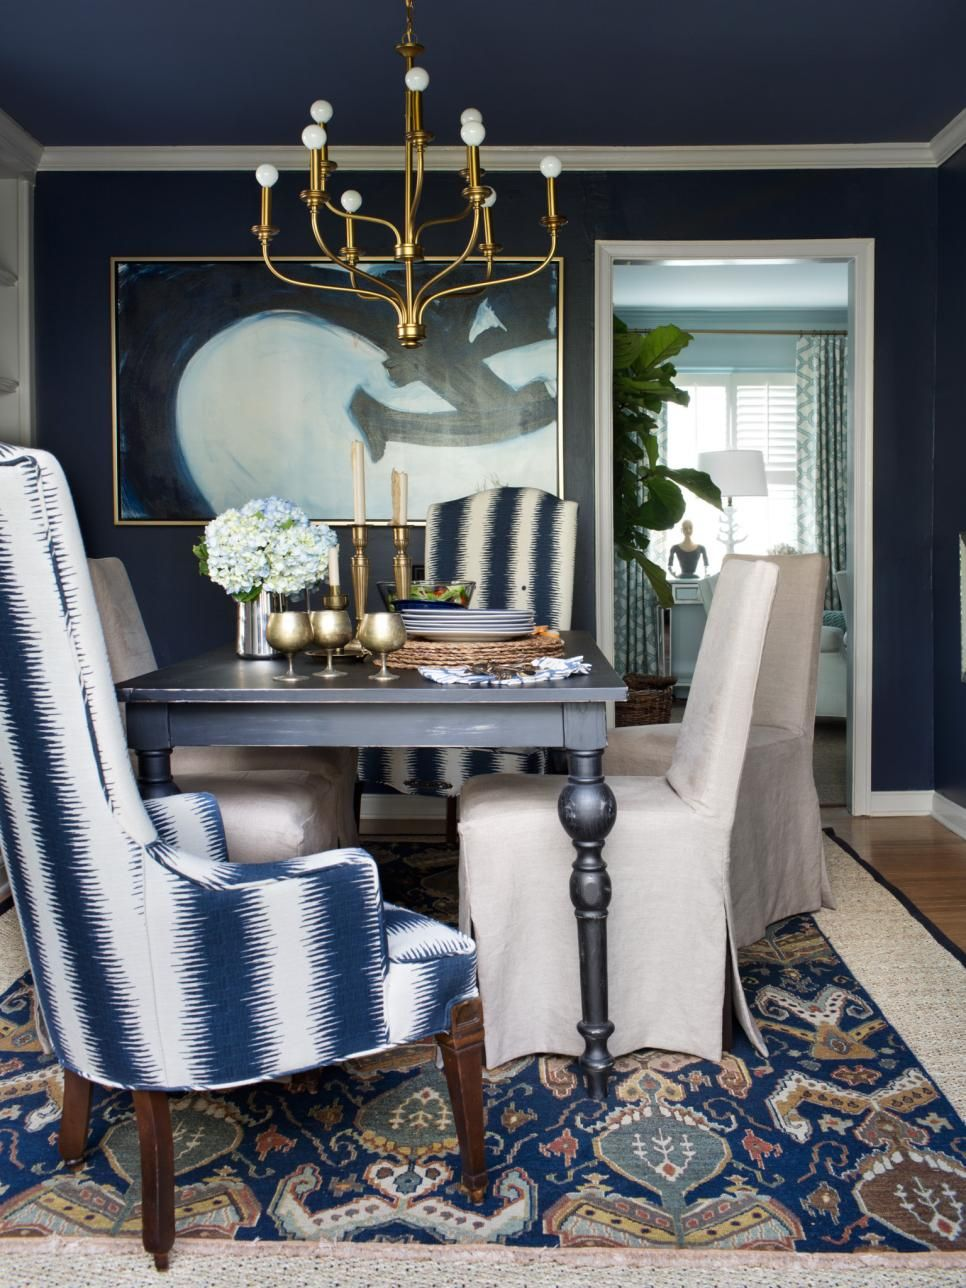 Blue Stain Wall Come With Beige Fabric Area Rug And Gold Ceiling Lamp Plus Varnished Dark Wood Dining Table Together Floor Tile